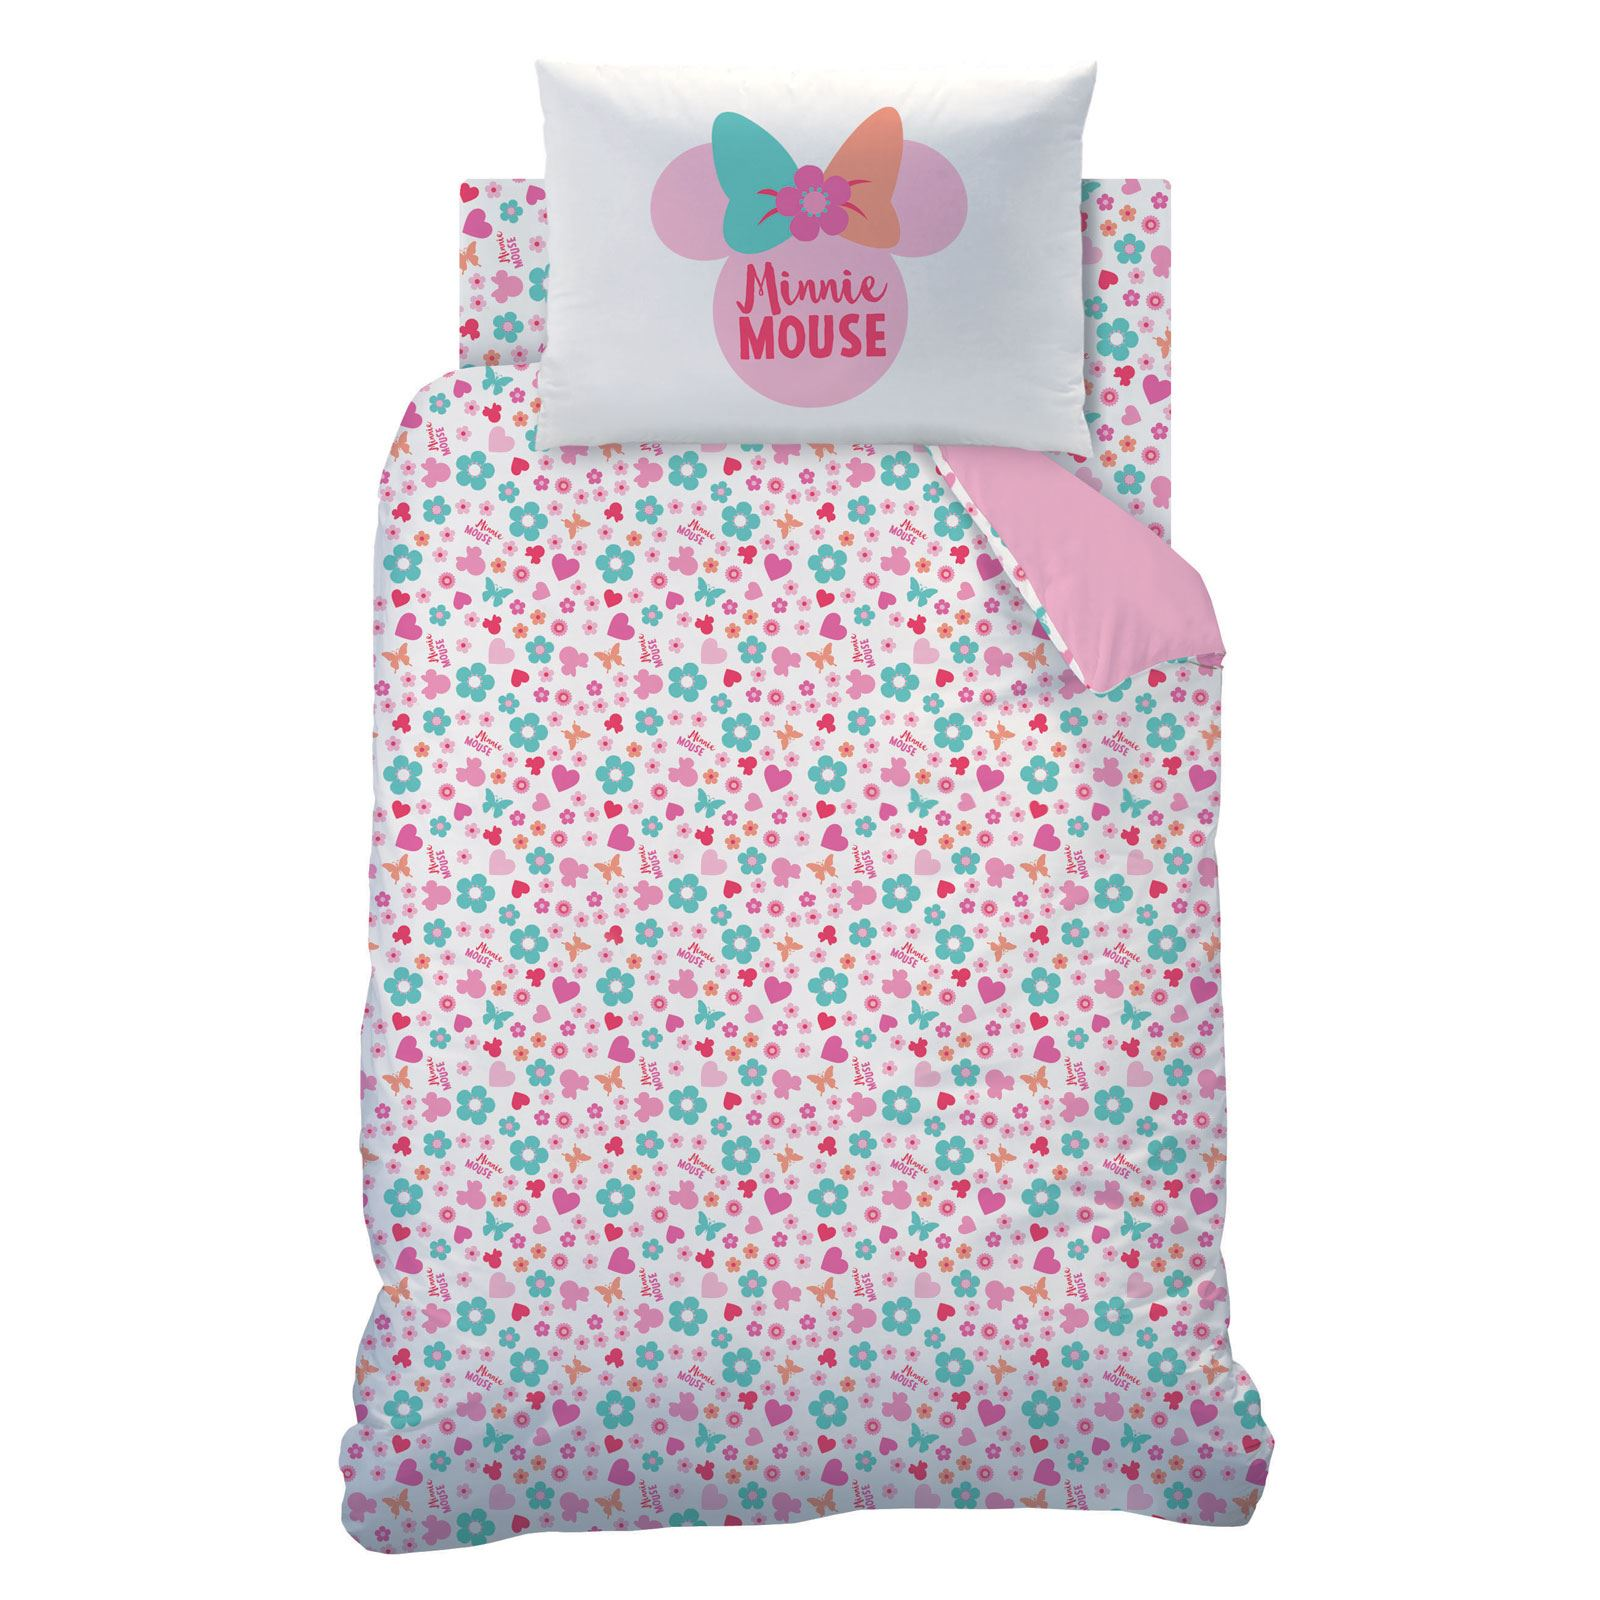 MINNIE-MOUSE-DUVET-COVERS-KIDS-GIRLS-BEDDING-SINGLE-DOUBLE-JUNIOR thumbnail 32